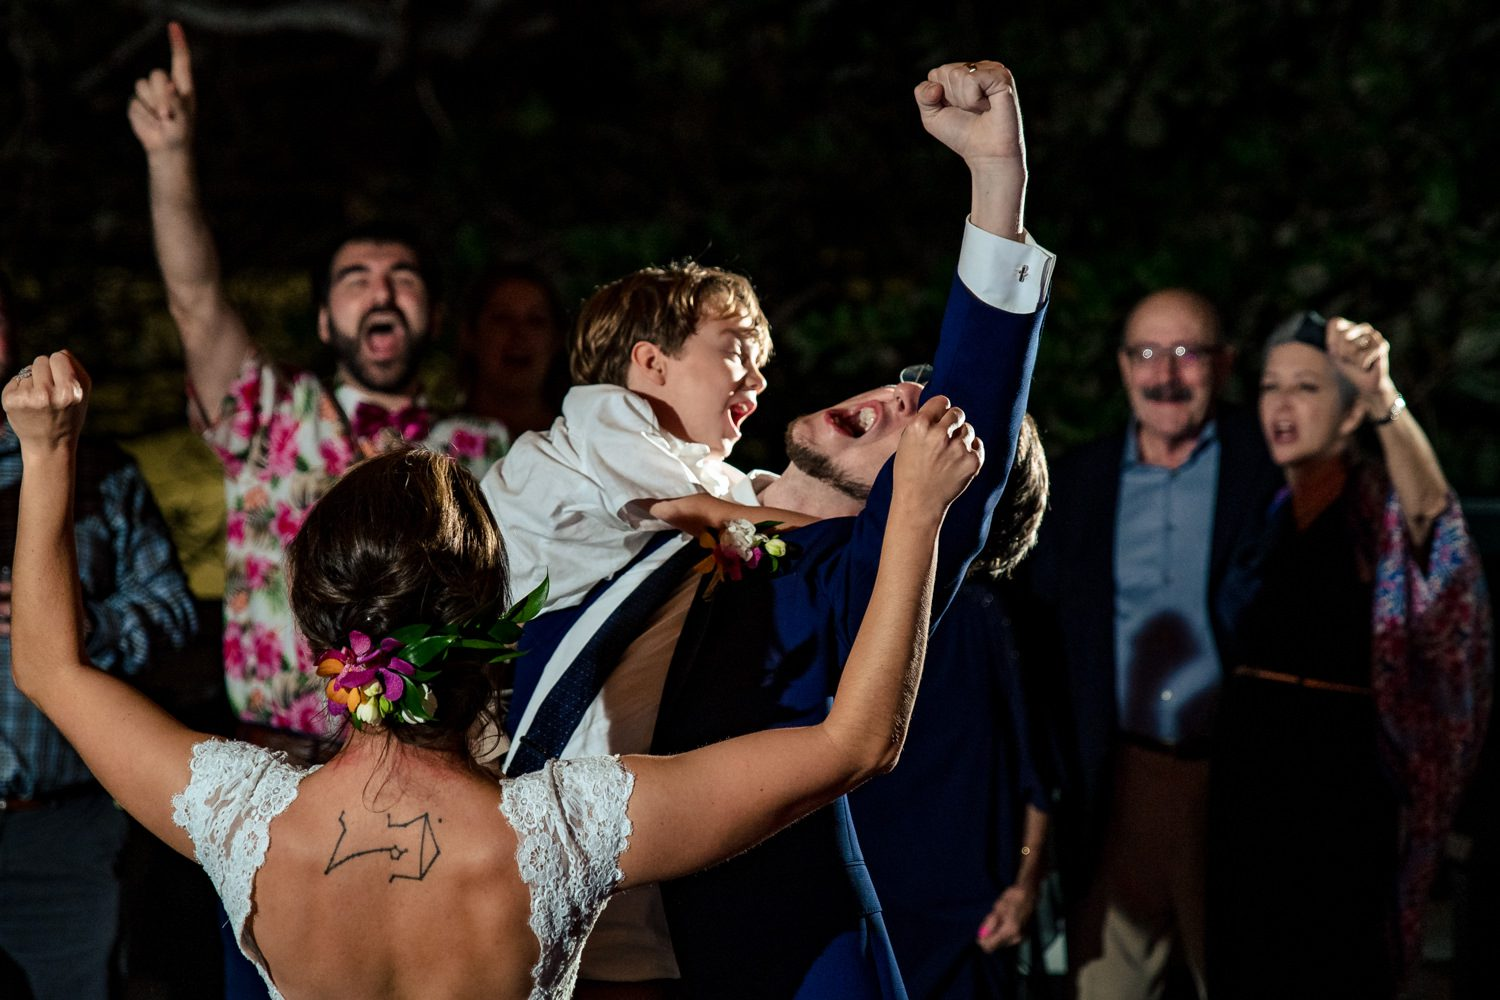 Groom holding a young child while dancing